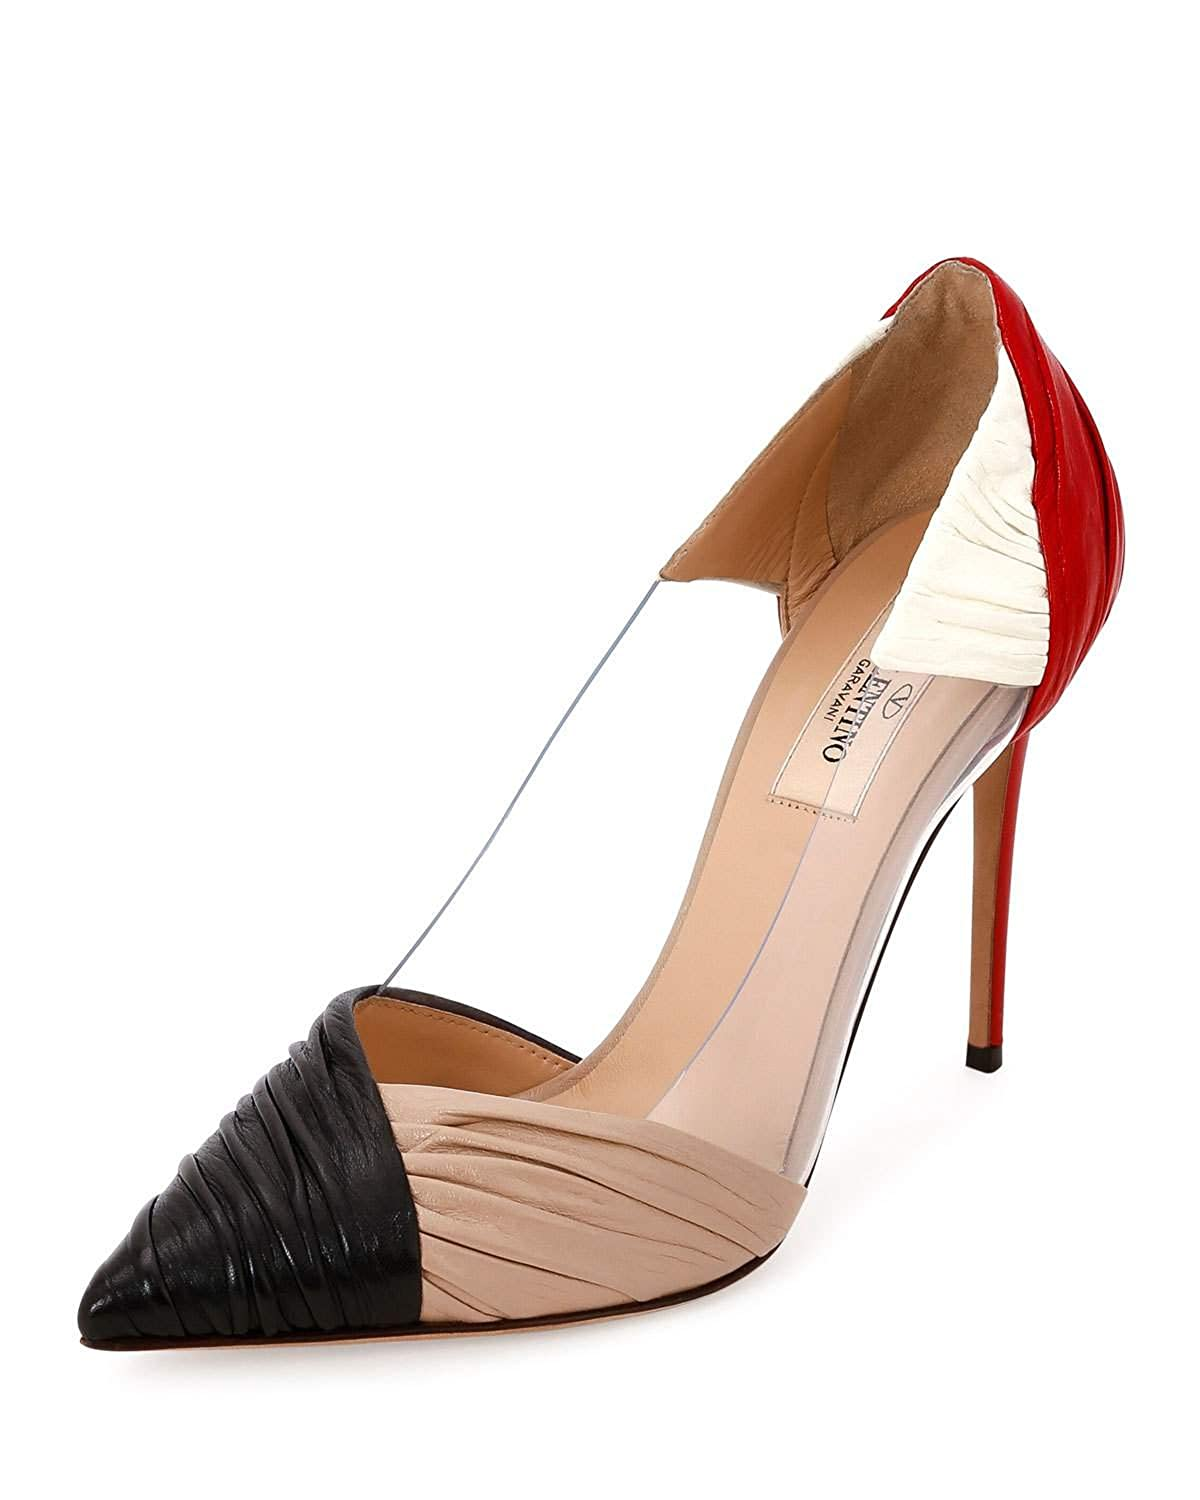 962ec4e7cc Amazon.com | Valentino Garavani B-Drape Leather 100mm Pump, Red/Black/Ivory/ Poudre 40 | Pumps